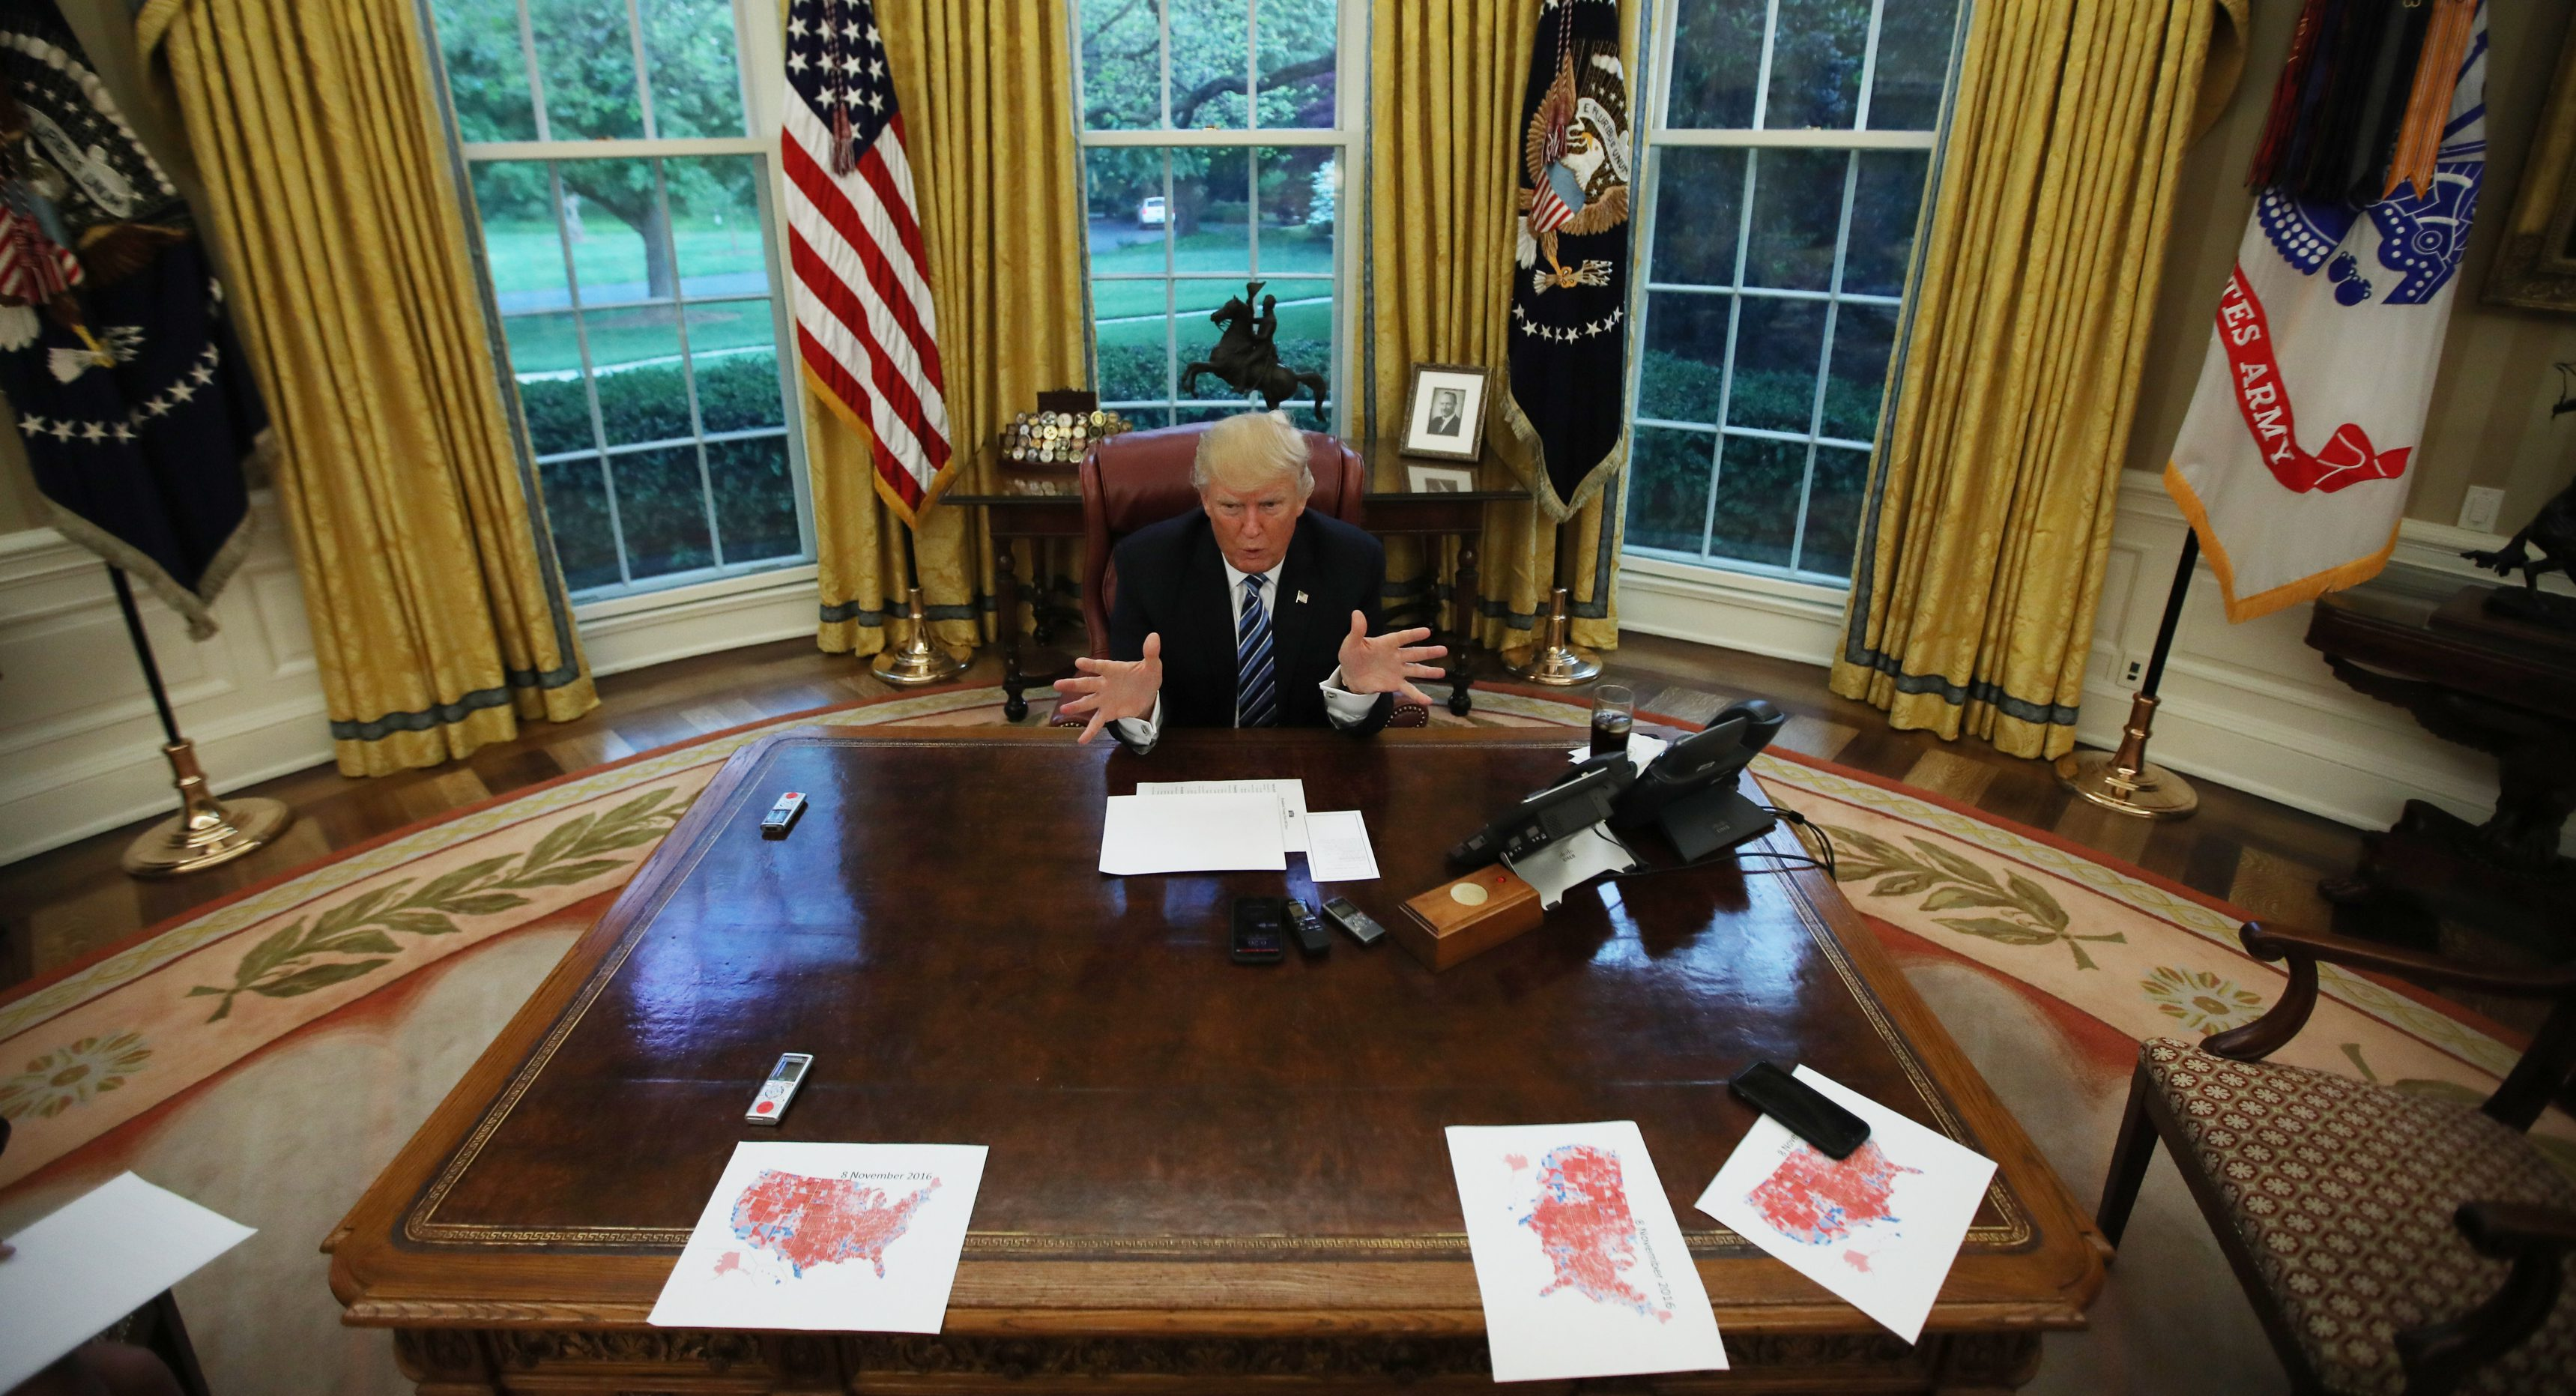 U.S. President Donald Trump speaks during an interview with Reuters in the Oval Office of the White House in Washington